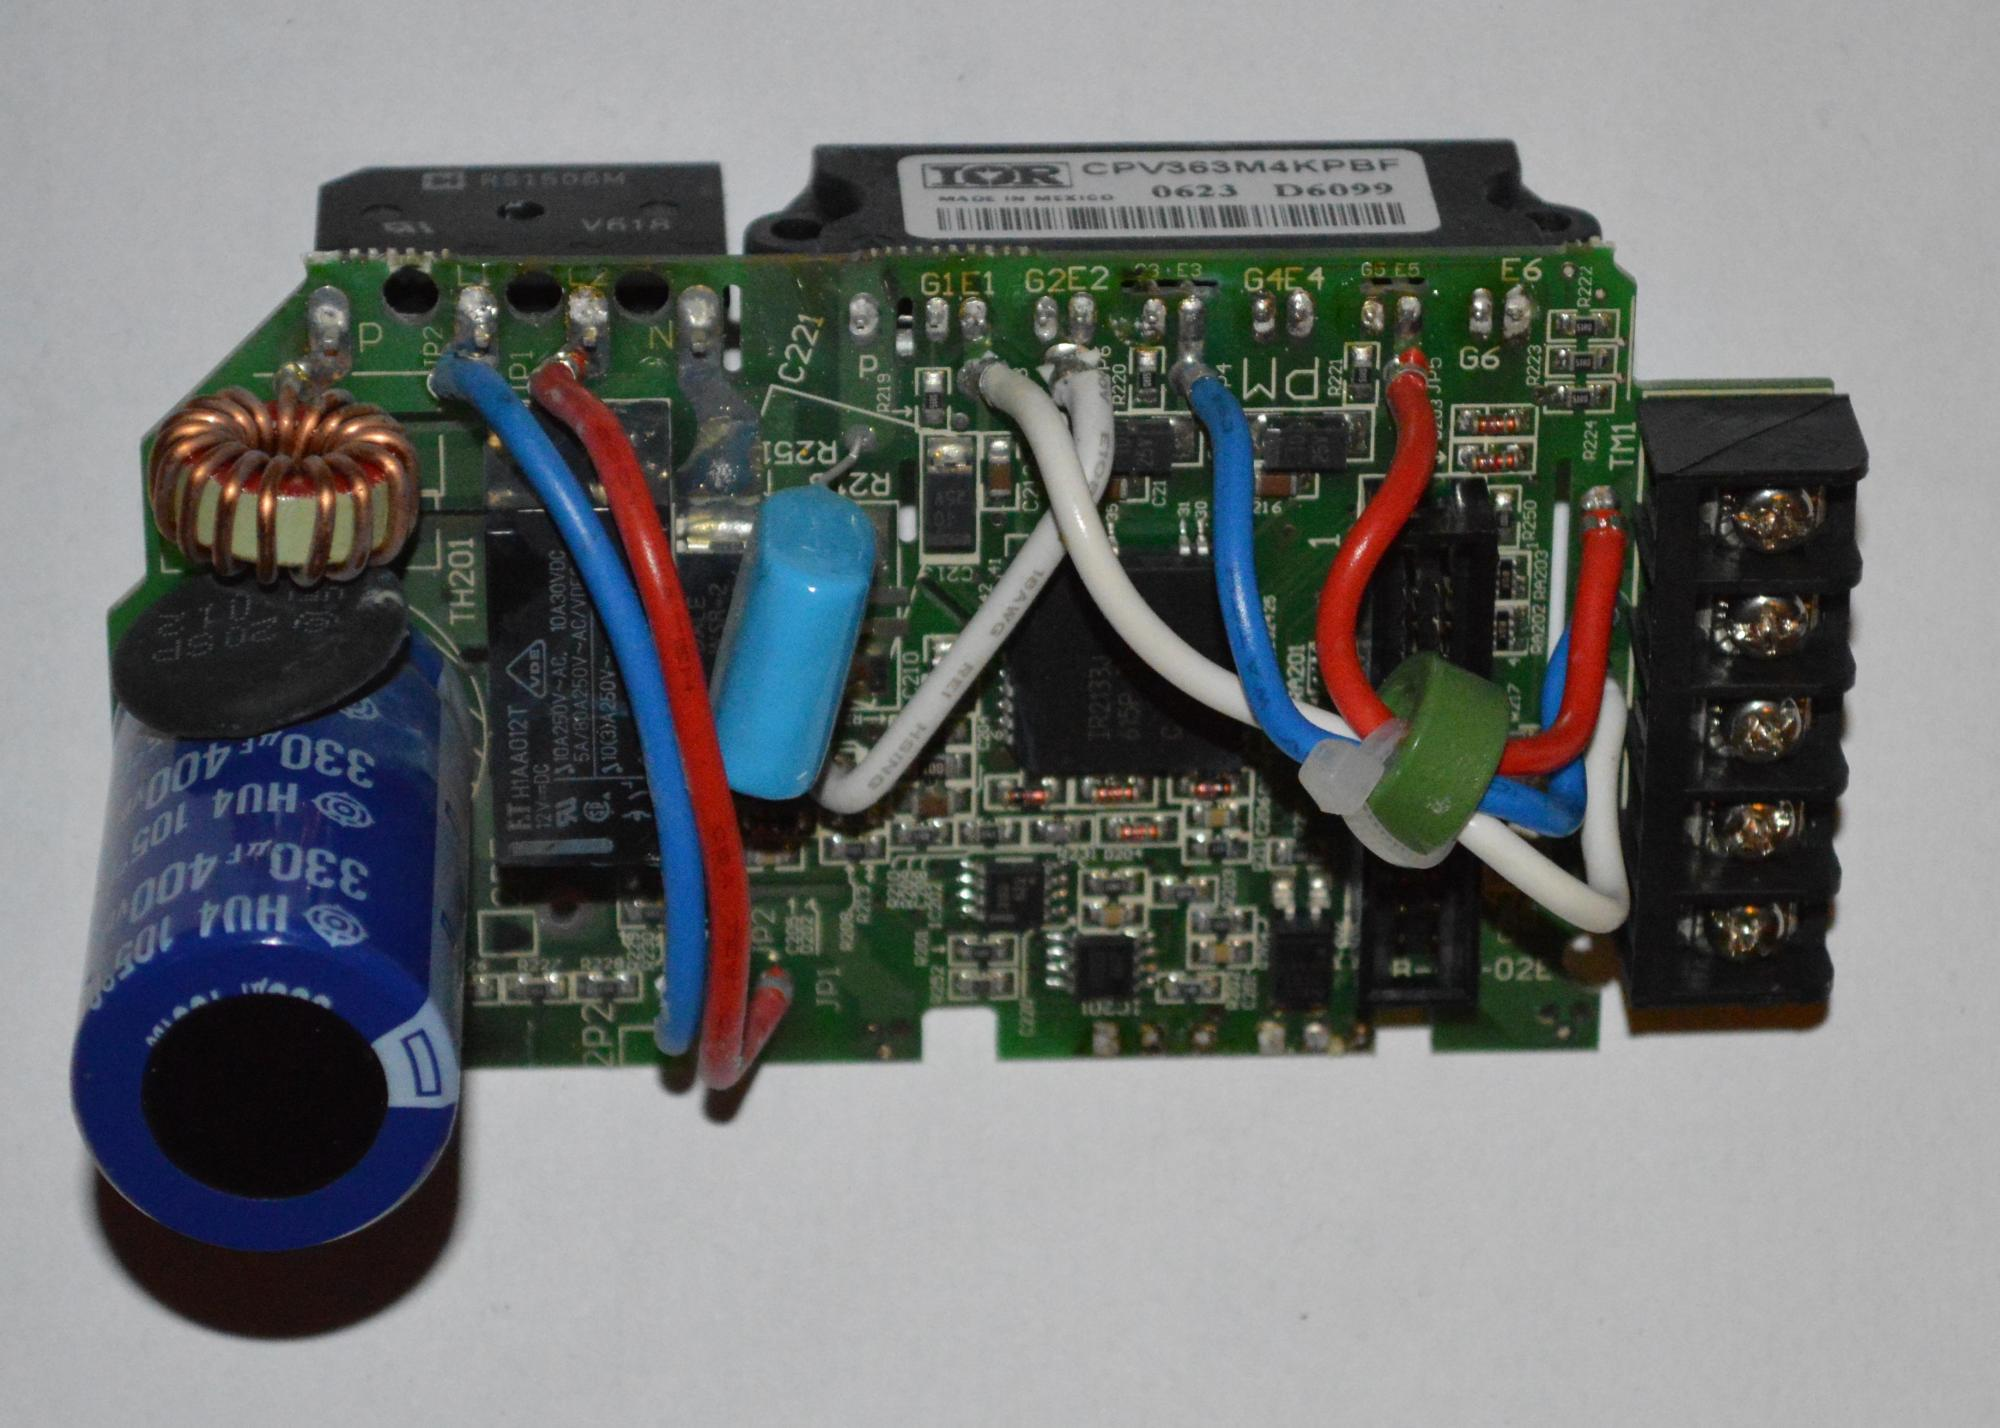 Inverter power circuit board. The large capacitor to the right is the main reservoir capacitor, while the inrush limiting NTC is the black body just above the capacitor. The rectifier and inverter modules are visible at the top left and right respectively.